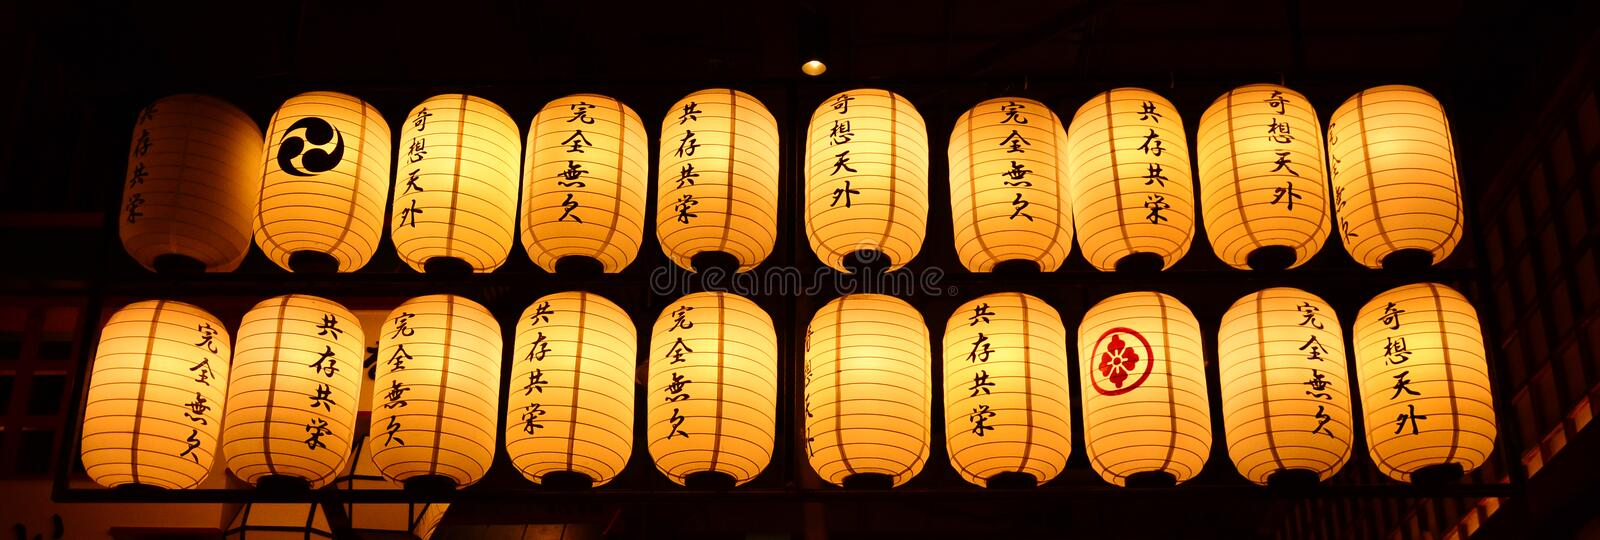 Download Japansk lykta stock illustrationer. Illustration av lampa - 37349338